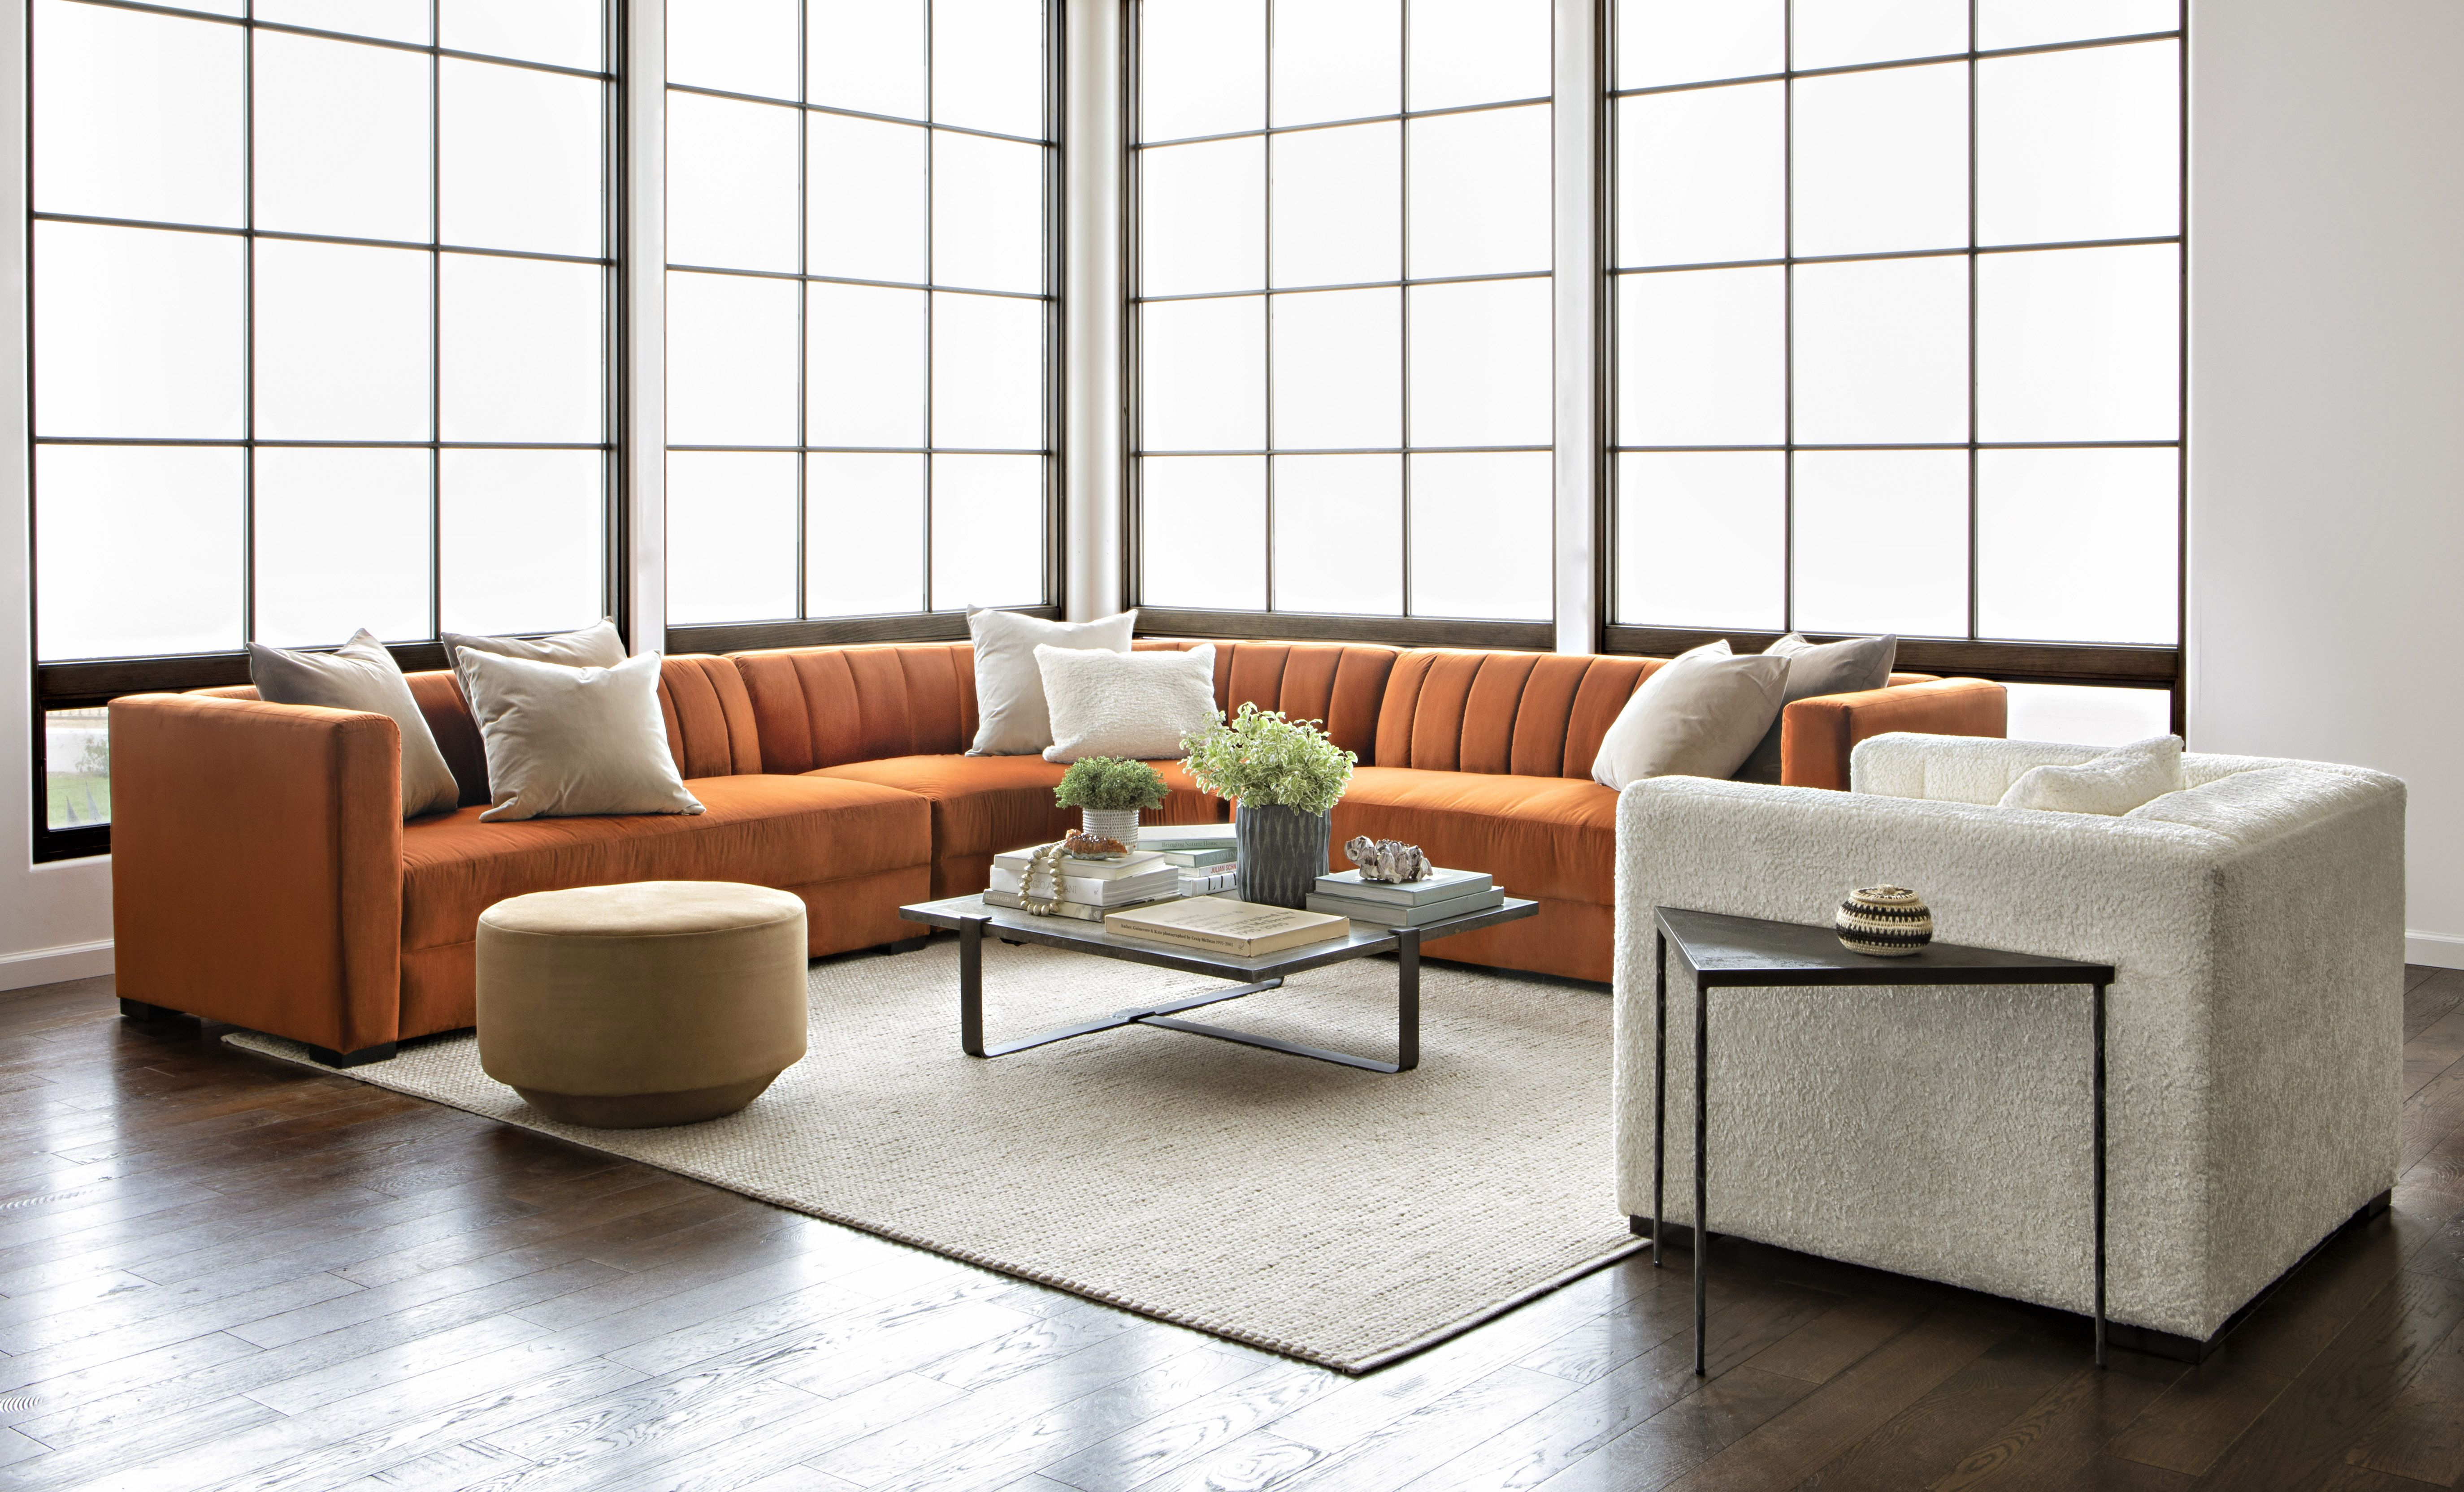 Soane 3 Piece Sectionalnate Berkus And Jeremiah Brent | Nate + With Regard To Matteo Arm Sofa Chairs By Nate Berkus And Jeremiah Brent (Image 24 of 25)